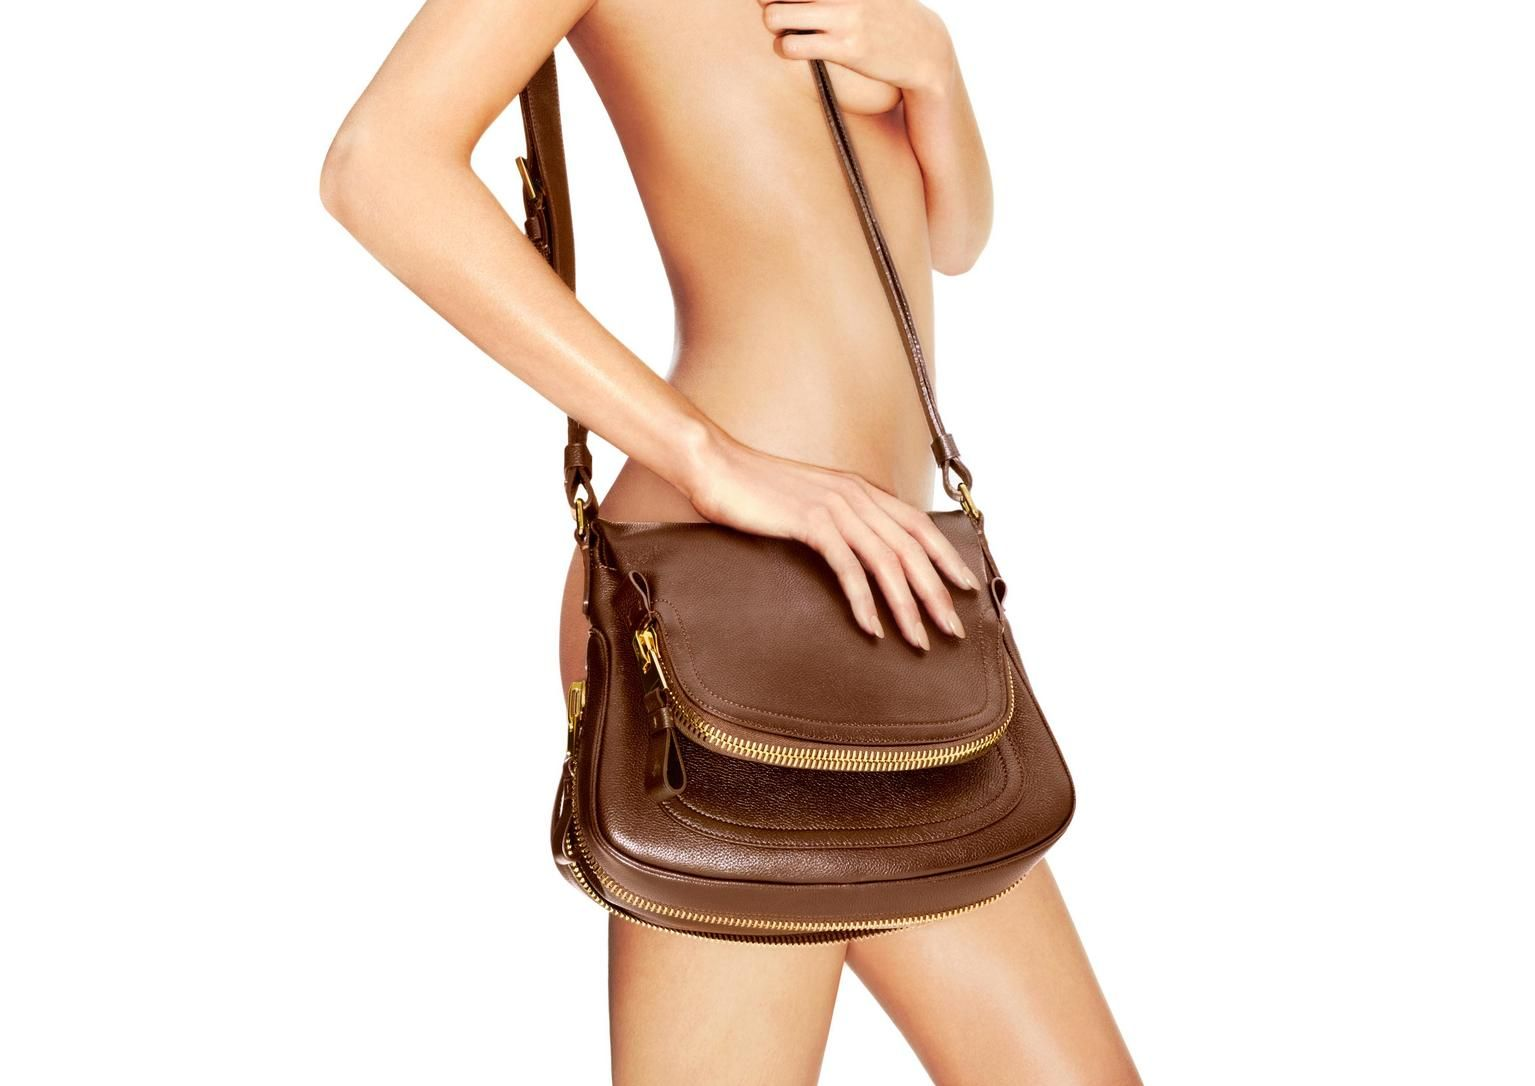 4defe3a0d Jennifer Leather Adjustable Strap Medium Shoulder Bag | Shop Tom Ford  Online Store